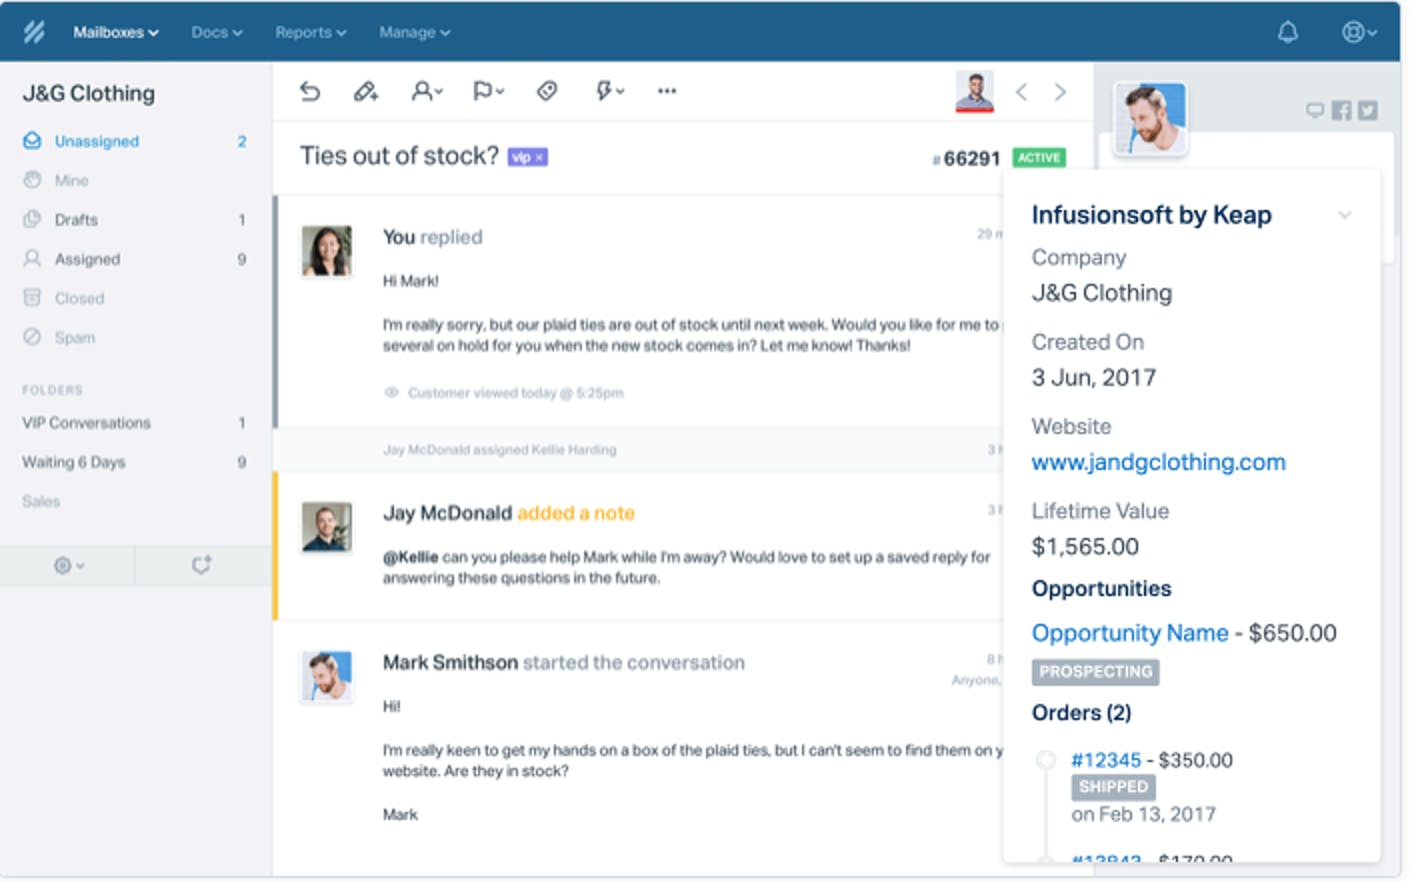 Help Scout - Infusionsoft integration